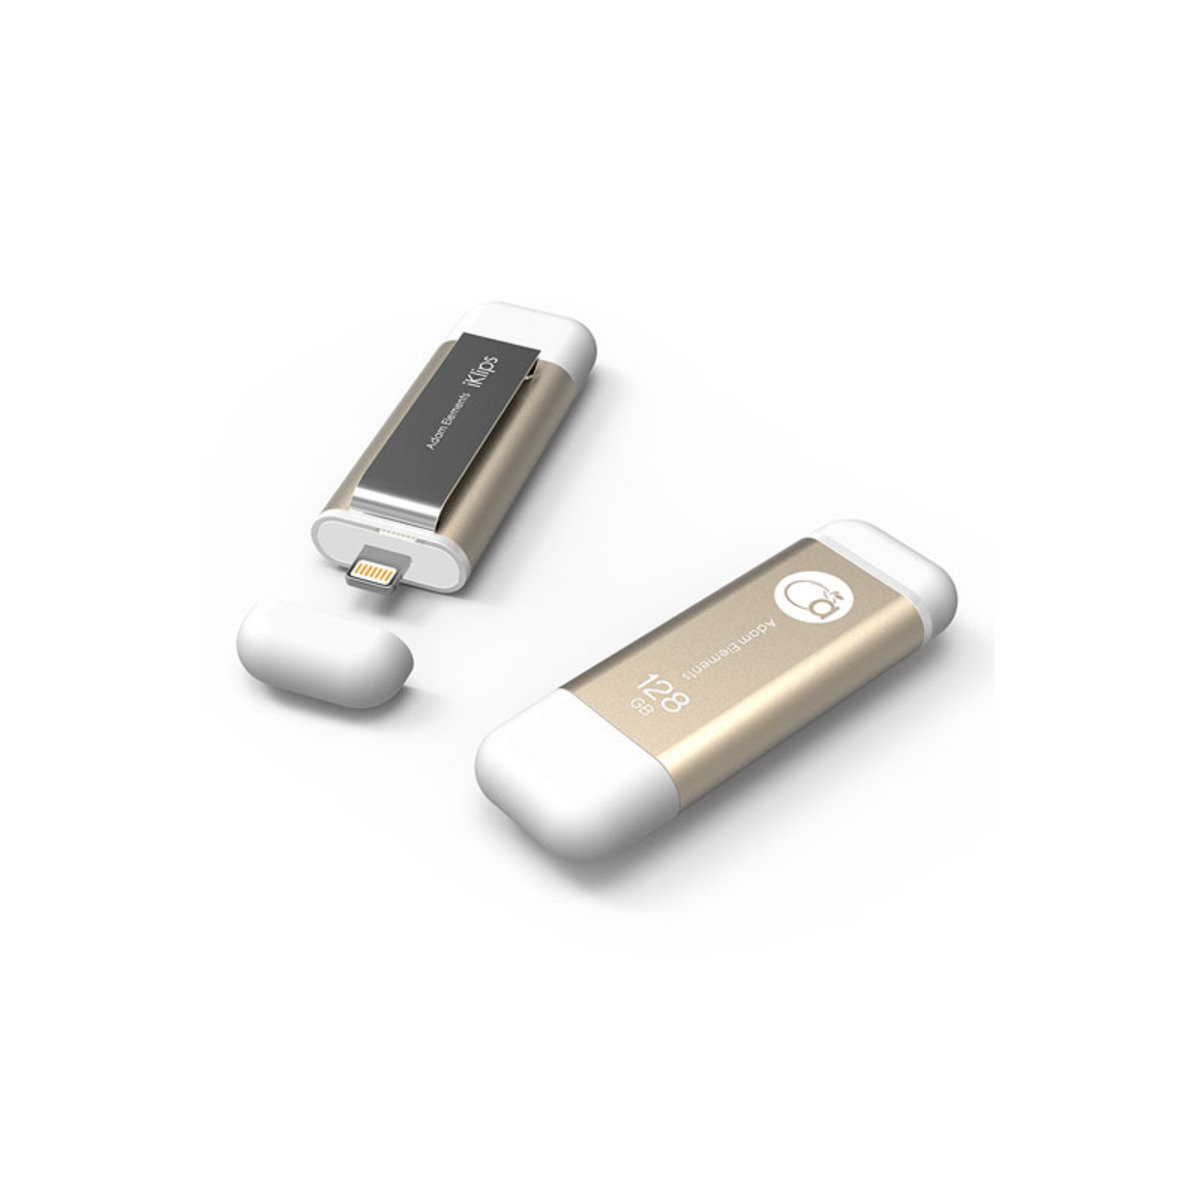 iKlips Lightning/USB 3.0雙介面隨身盤 128GB 金色